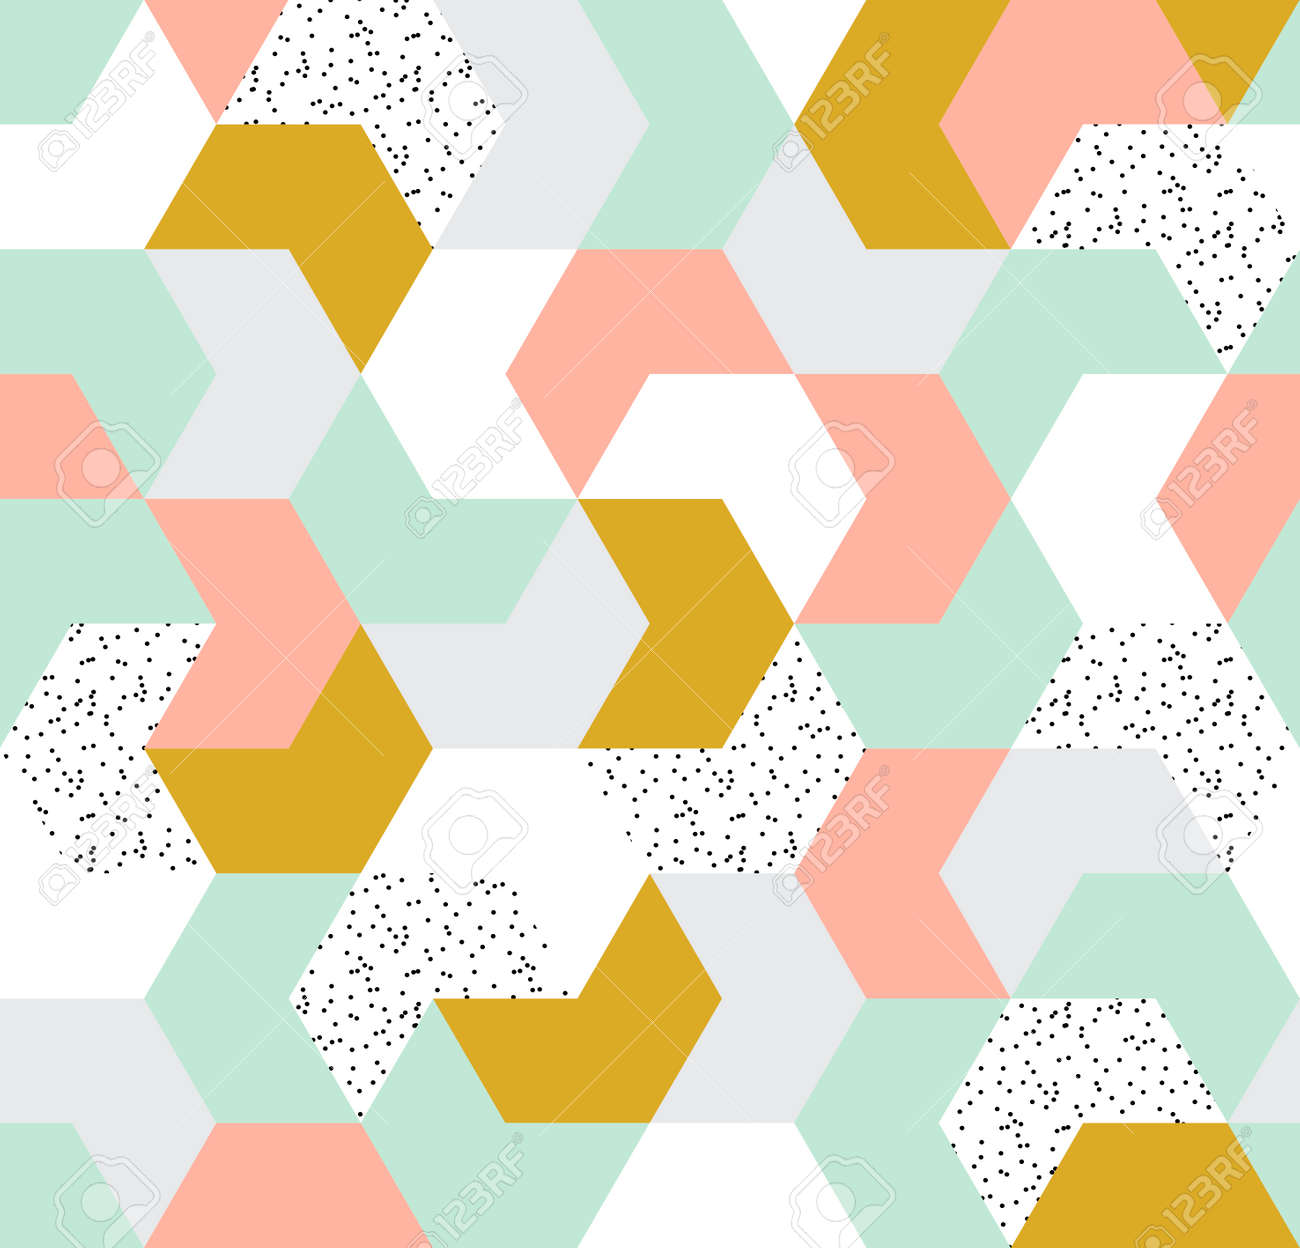 Cute colorful arrow seamless pattern  Endless background of geometric